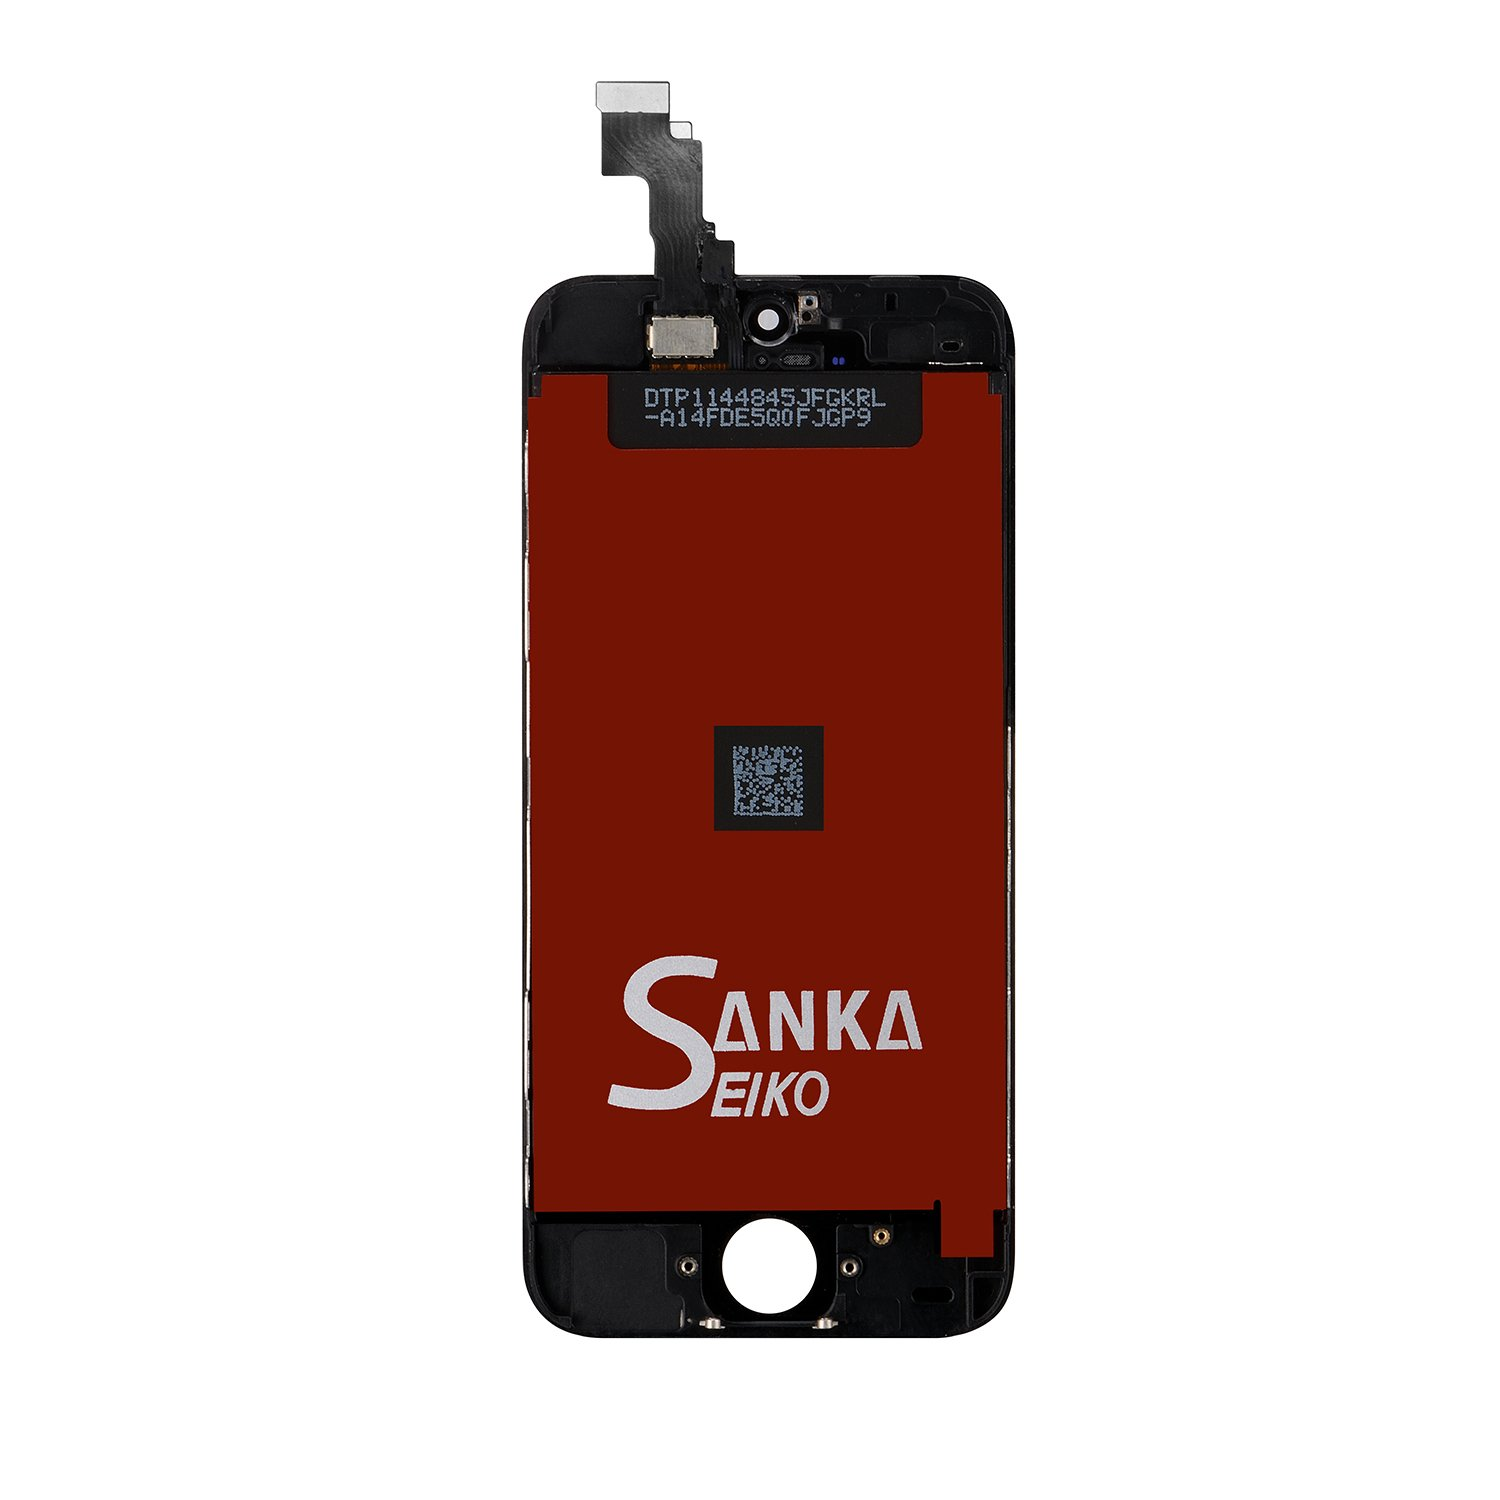 SANKA iPhone 5C LCD Screen Replacement, Digitizer Display Retina Touch Screen Glass Frame Assembly for iPhone 5C - Black (Free Tools Included) by SANKA (Image #5)